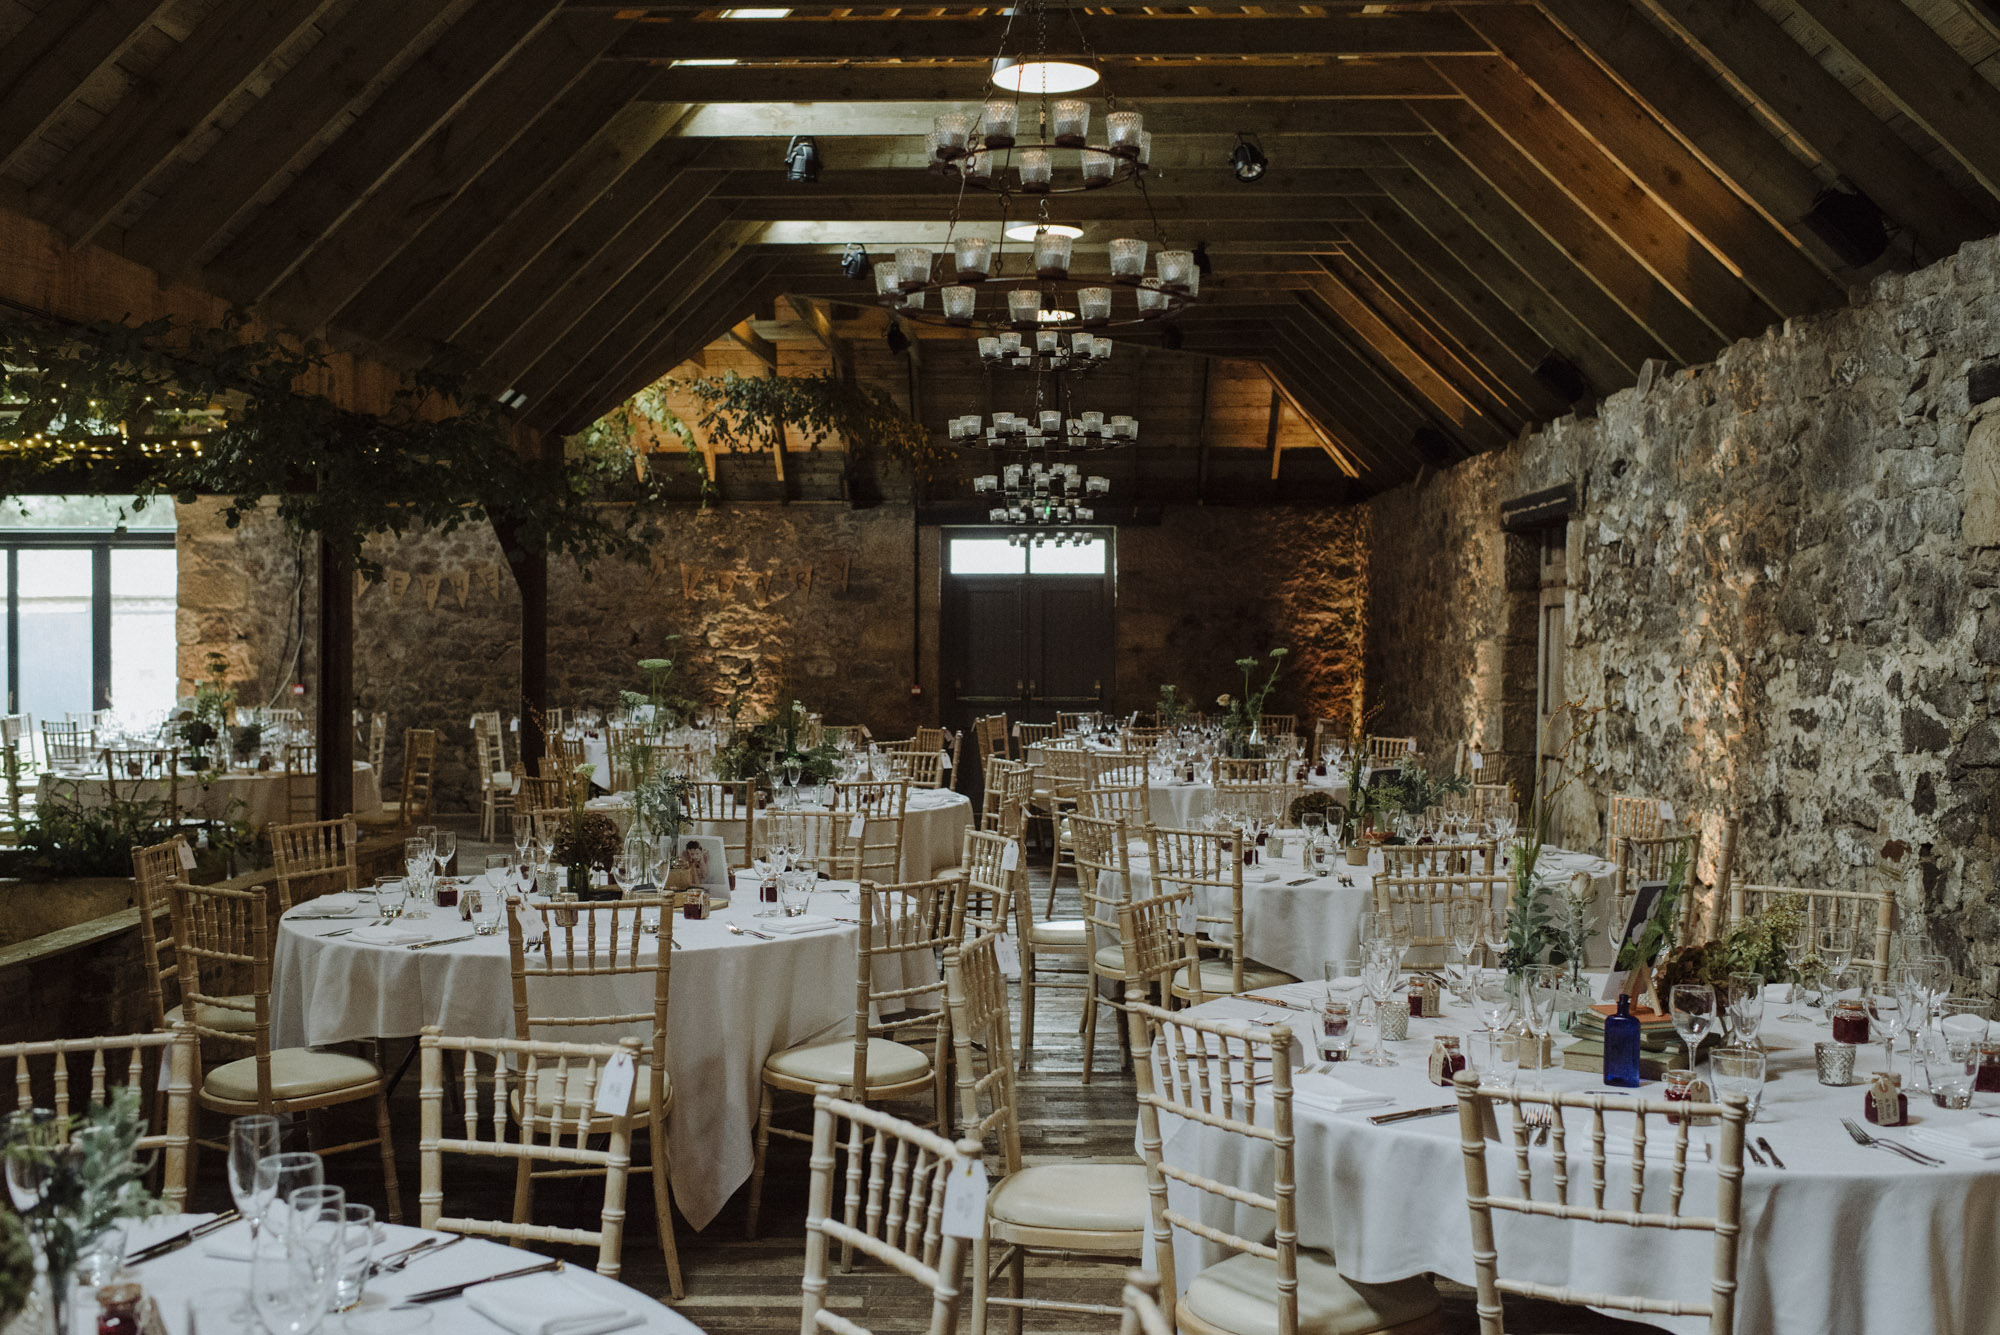 The Byre at Inchyra  Perthshire Scotland event  wedding barn  place weddings perthshire